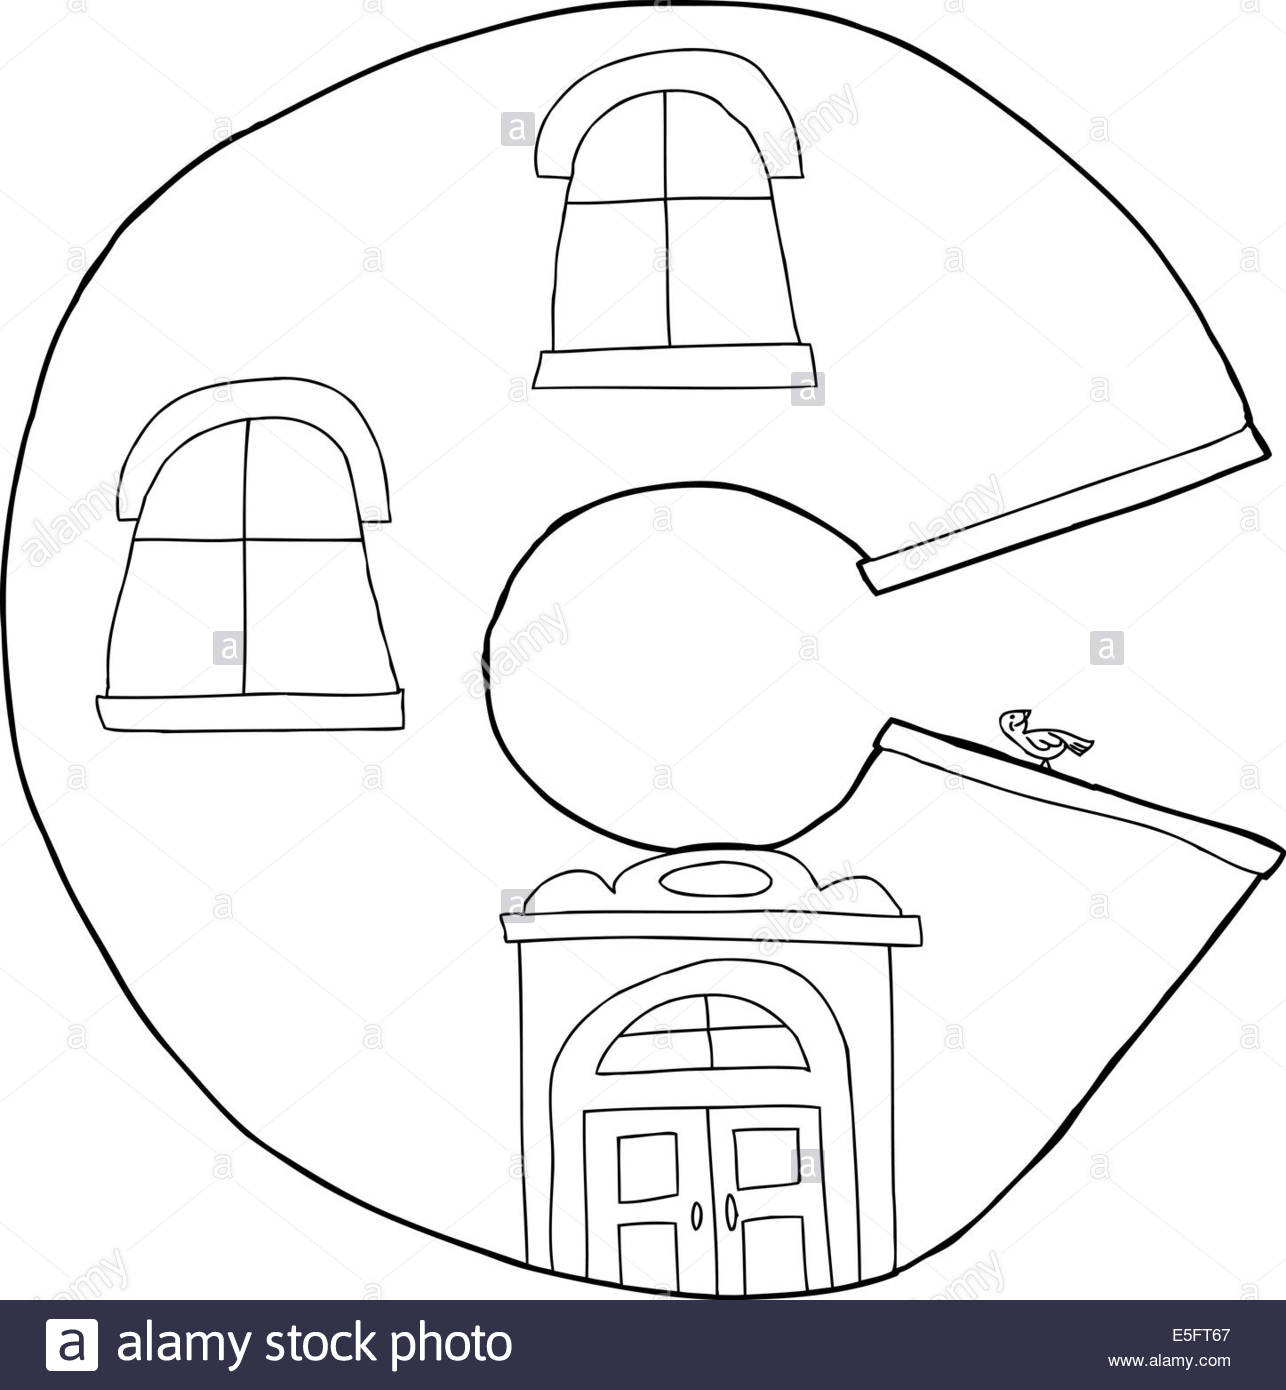 1286x1390 Outline Cartoon Letter C Apartment Shape Drawing Stock Photo